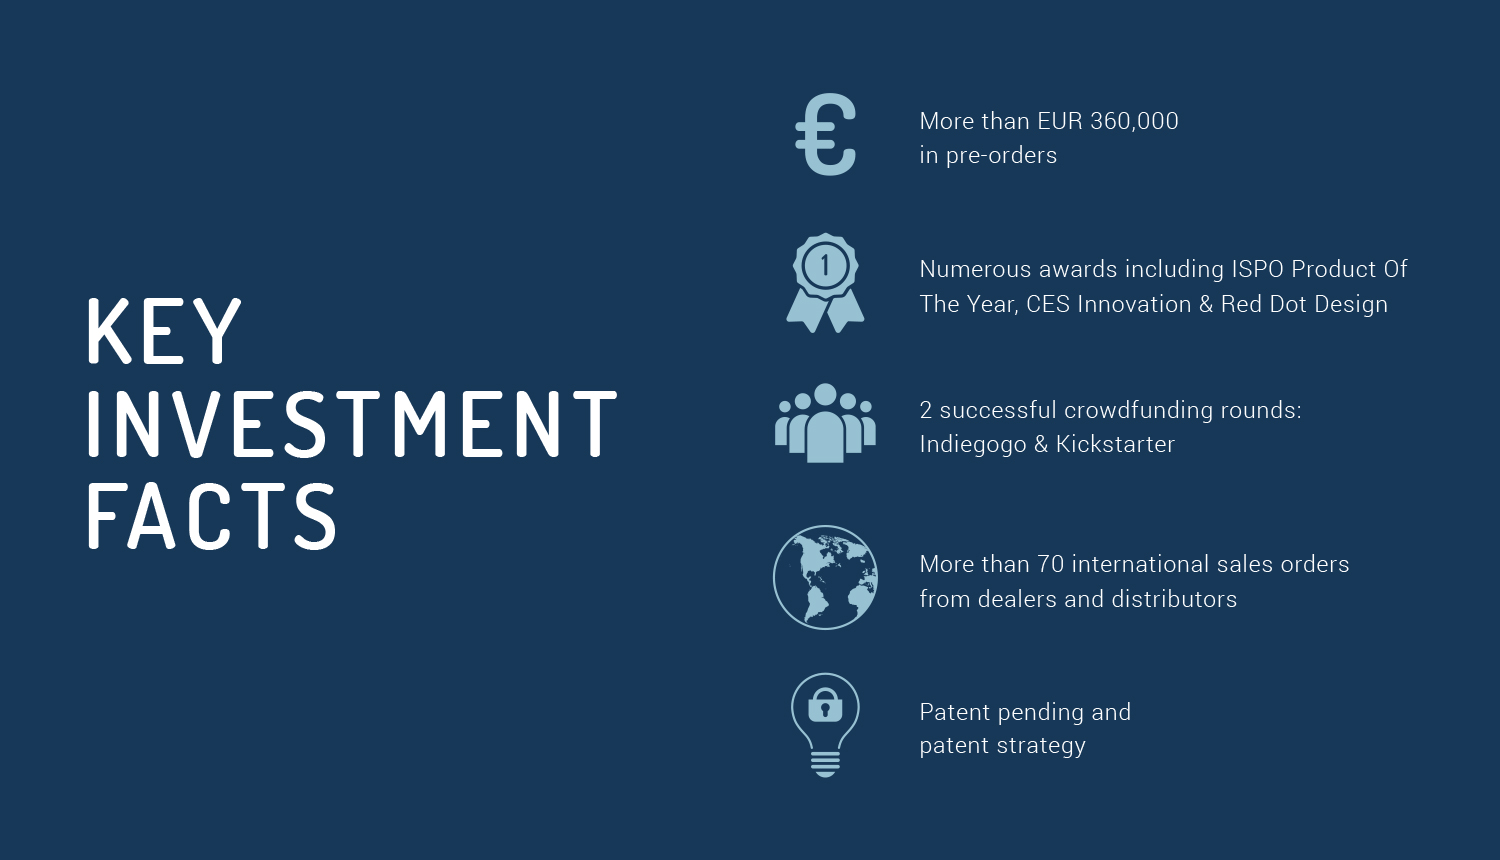 Keys Investment Facts